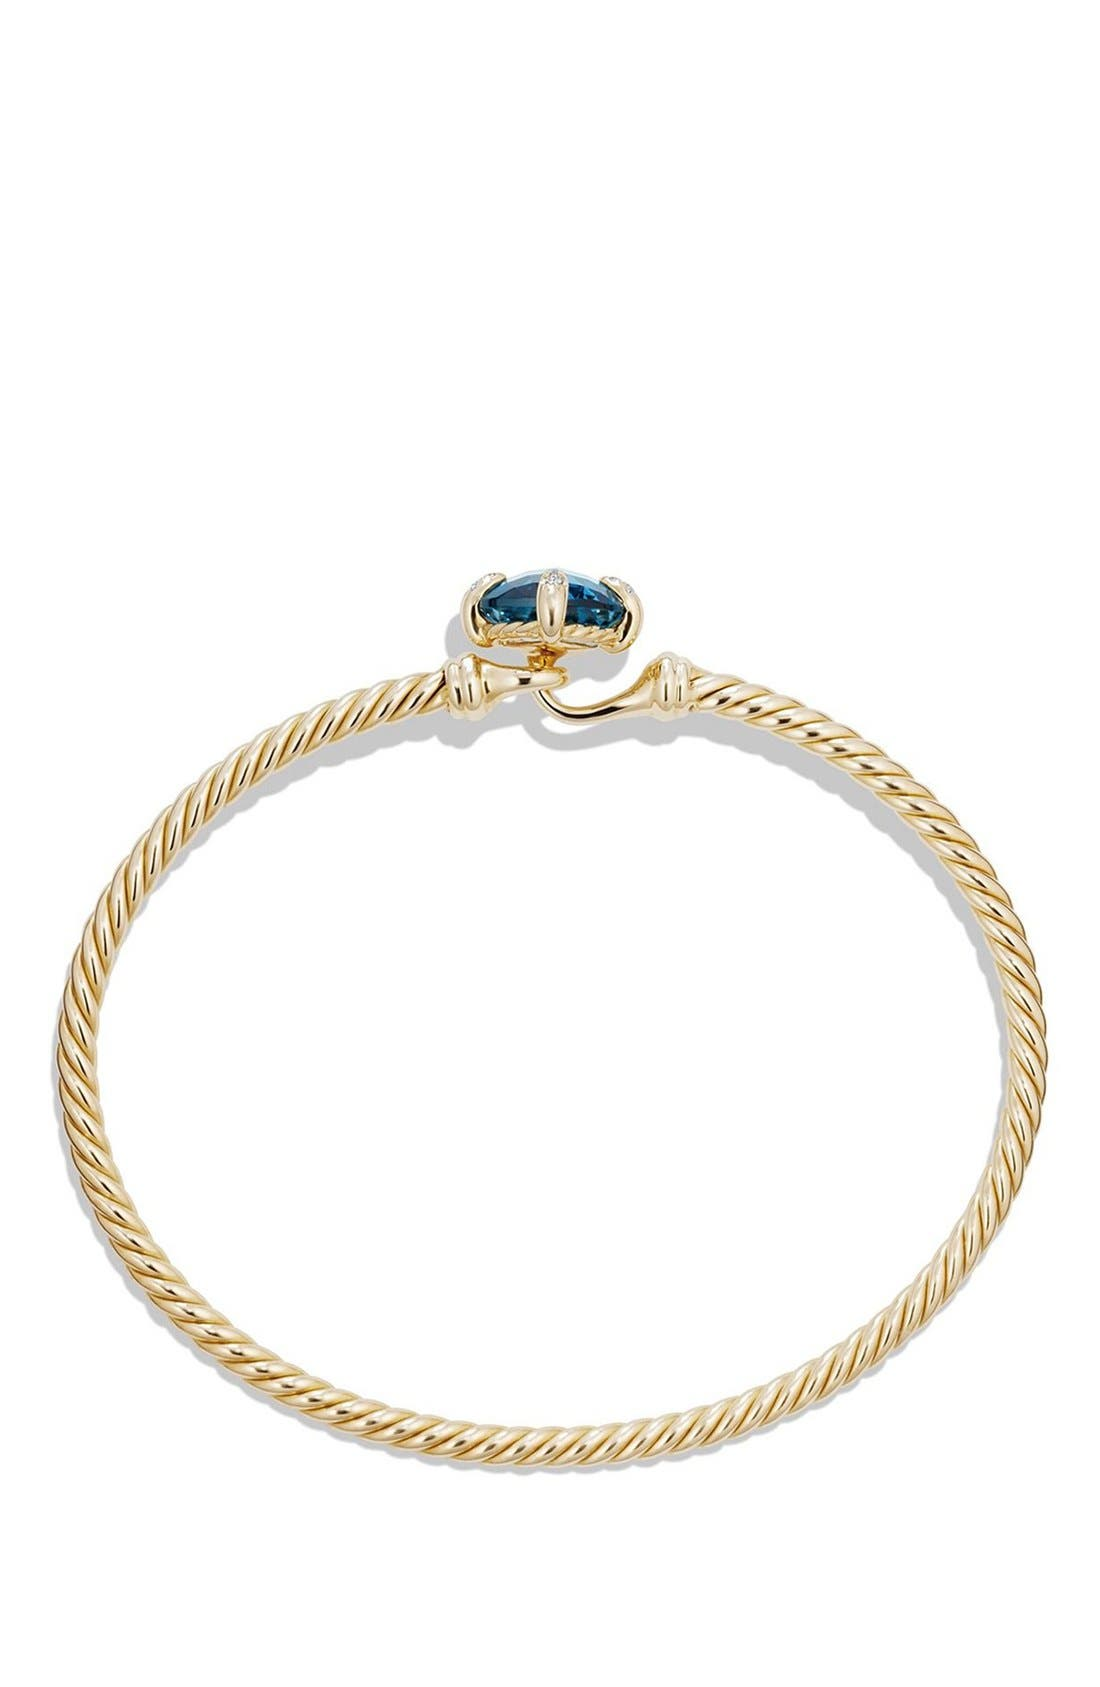 'Châtelaine' Bracelet in 18K Gold with Diamonds,                             Alternate thumbnail 2, color,                             HAMPTON BLUE TOPAZ